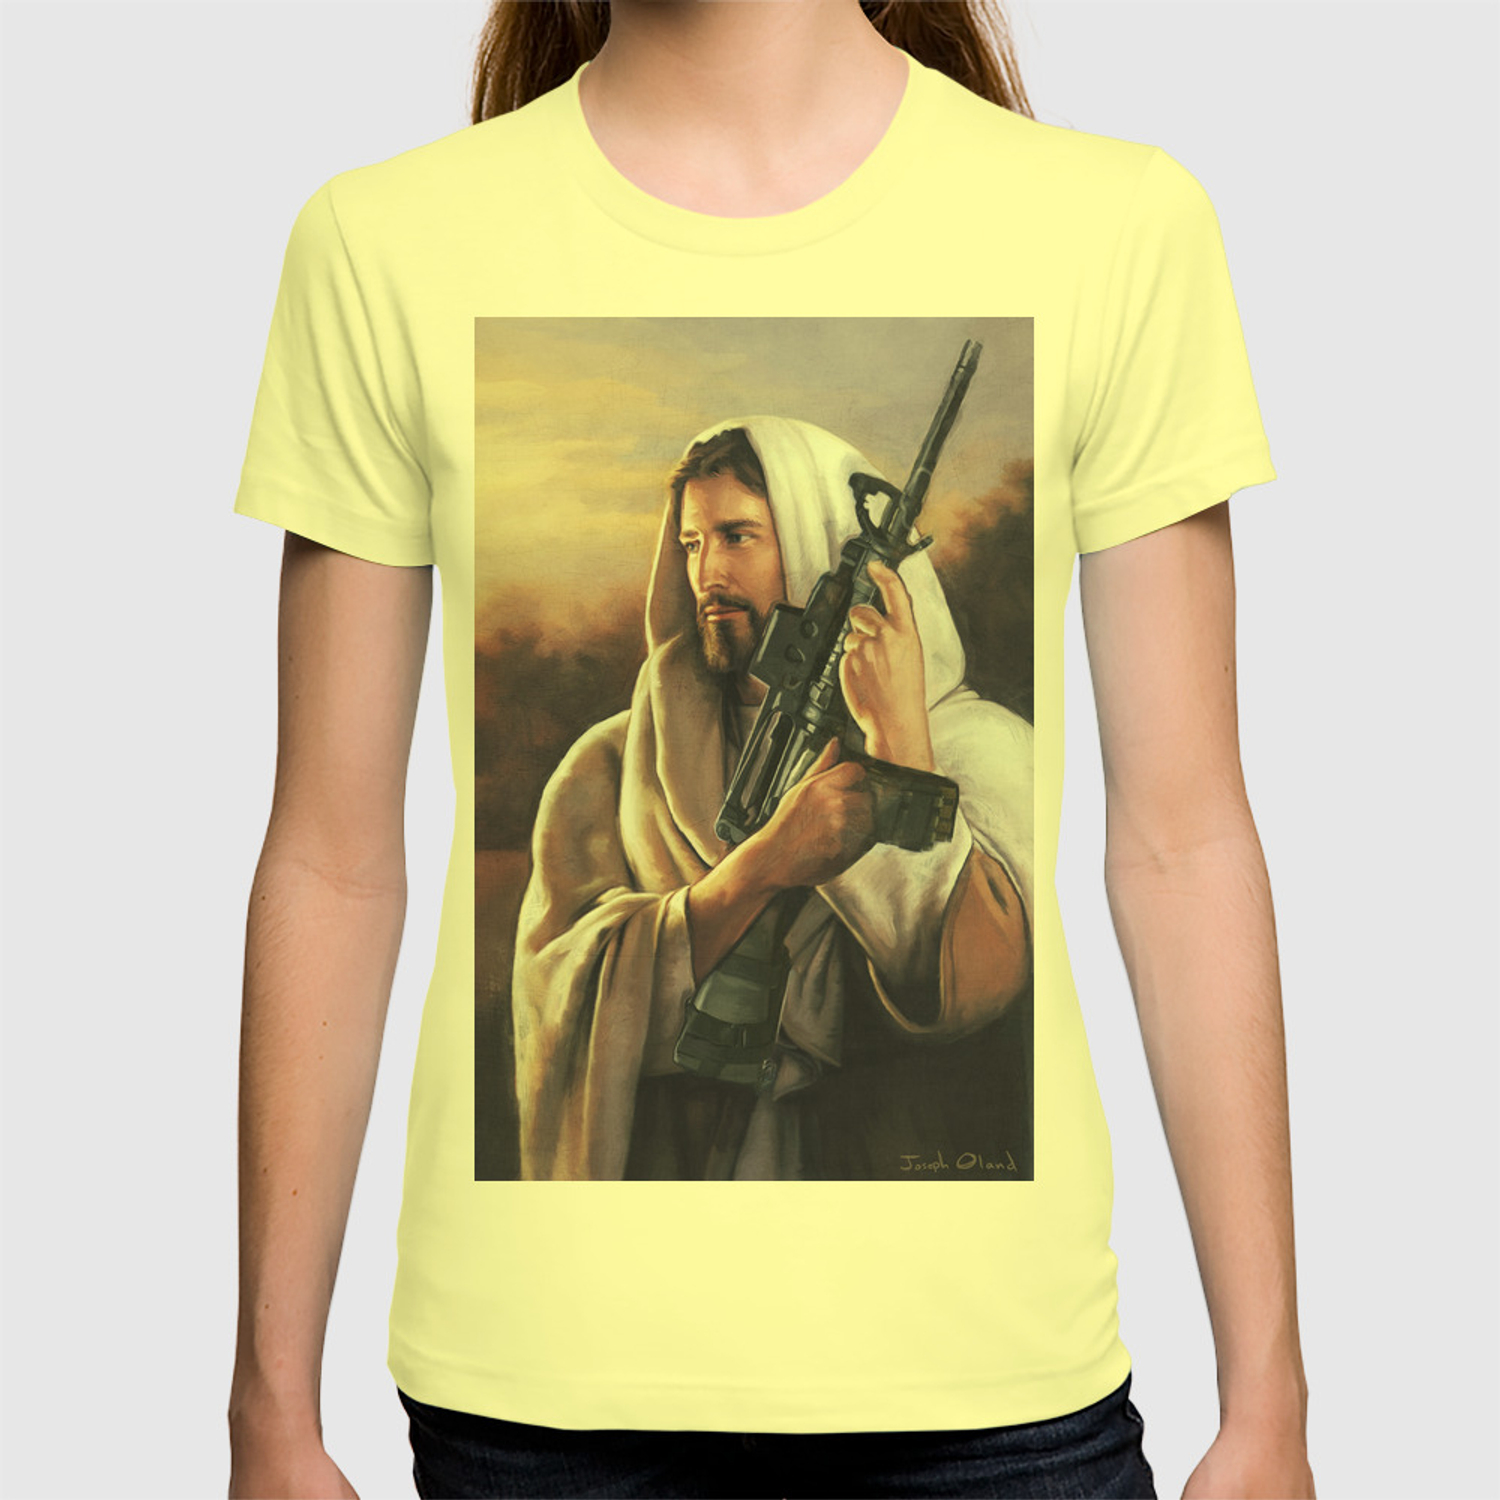 Assault rifle jesus christ messiah who would jesus shoot t shirt by thelensebender society6